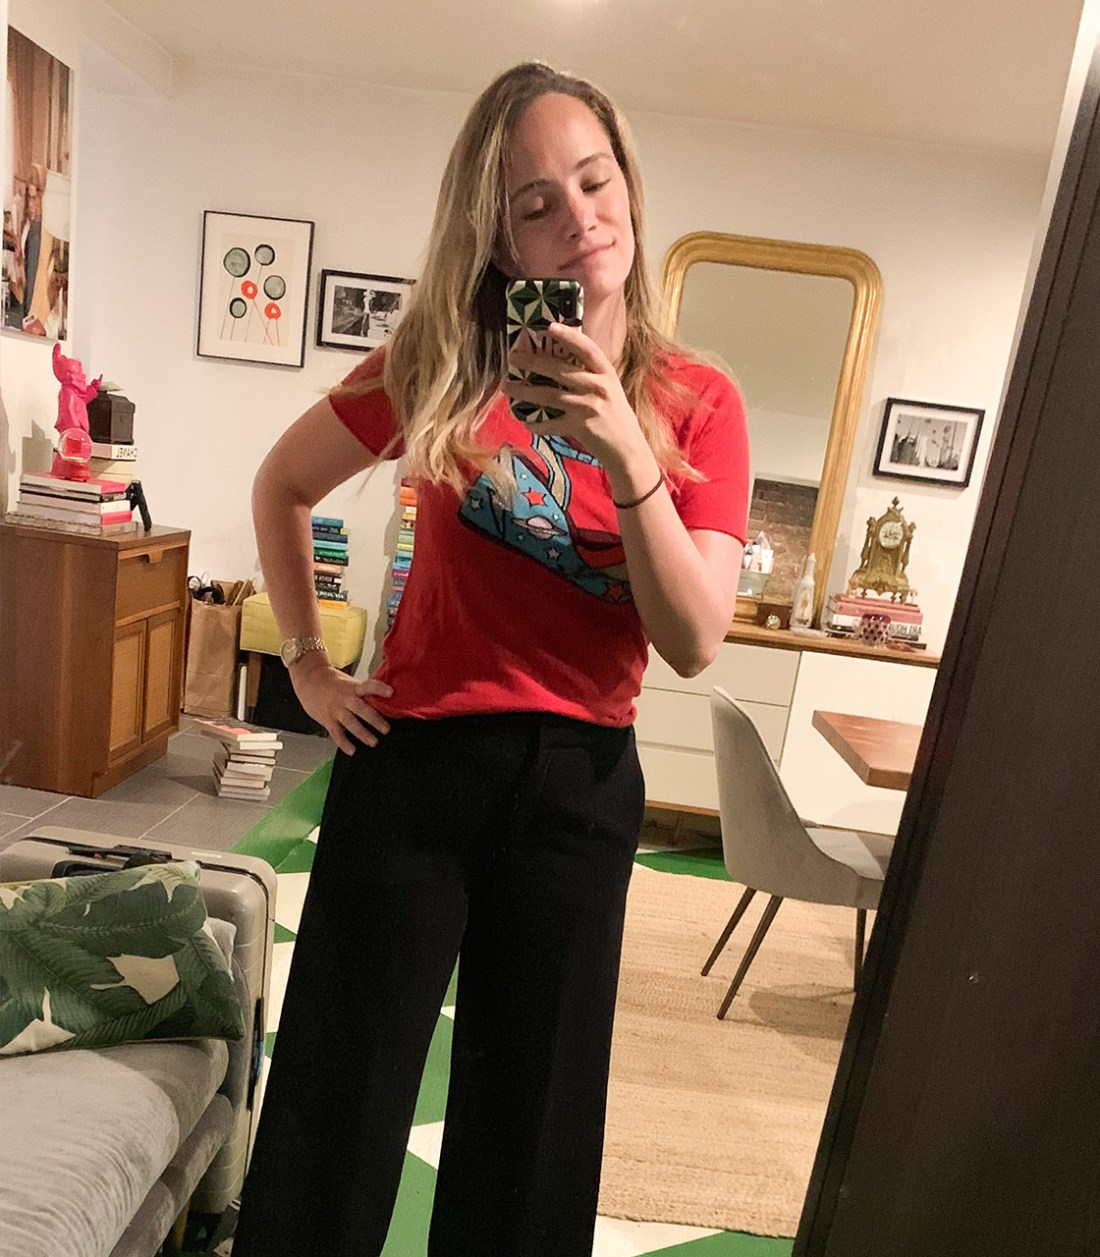 a black pant and red shirt in What I Actually Wore